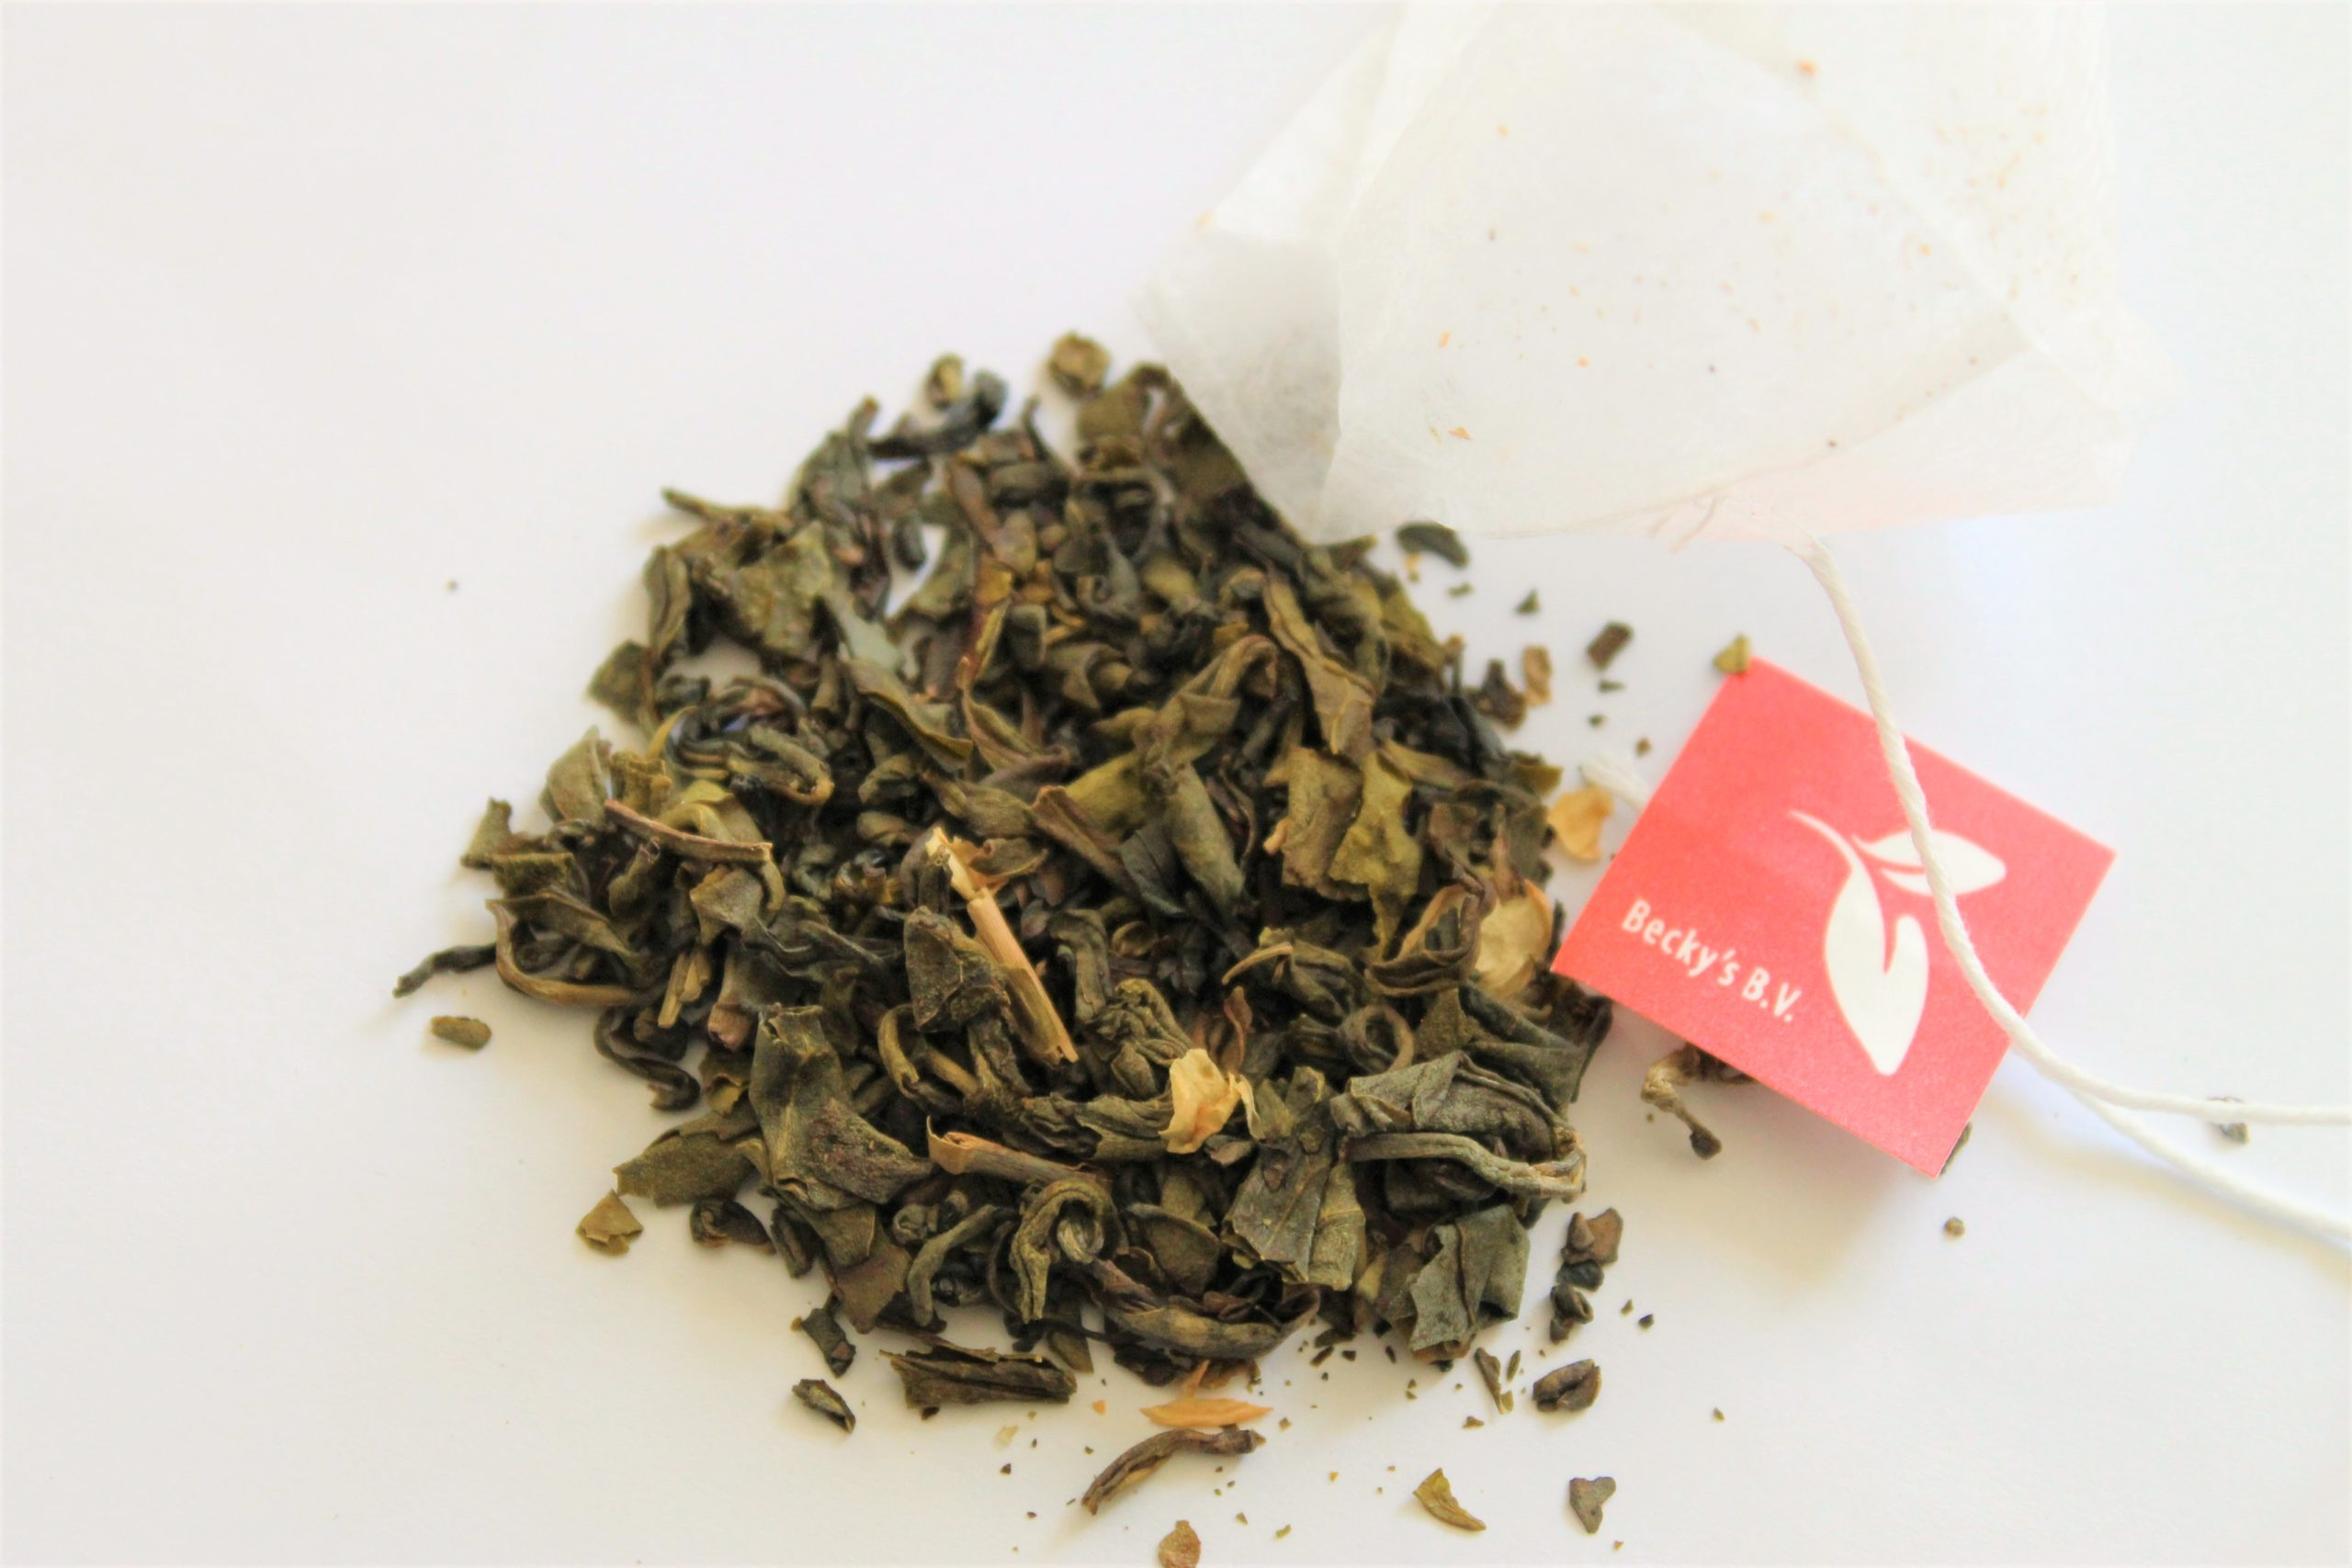 green tea leaves and jasmine petals